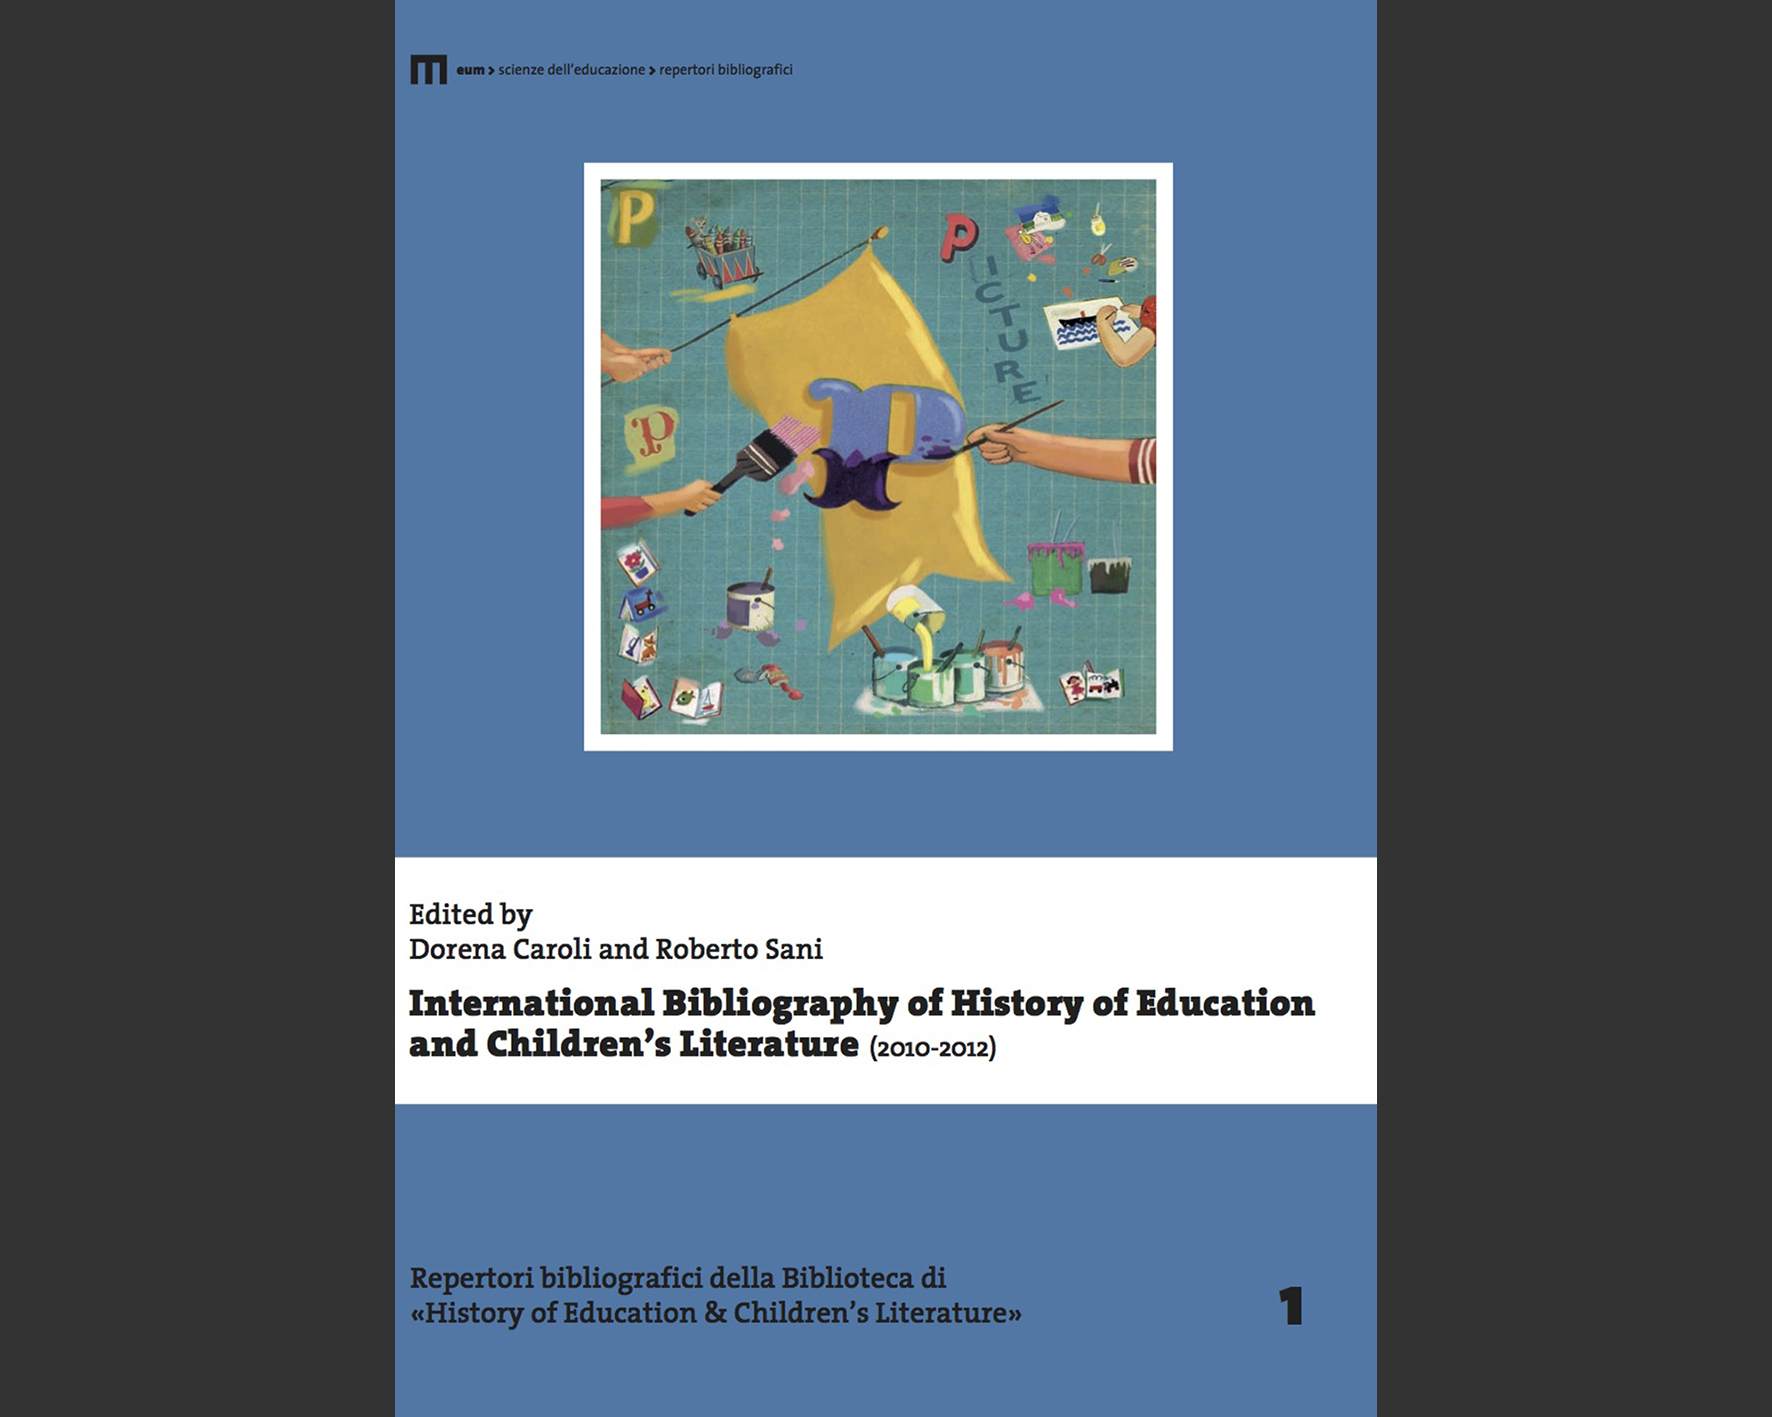 b213013700 International Bibliography of History of Education and Children's  Literature (2010-2012)